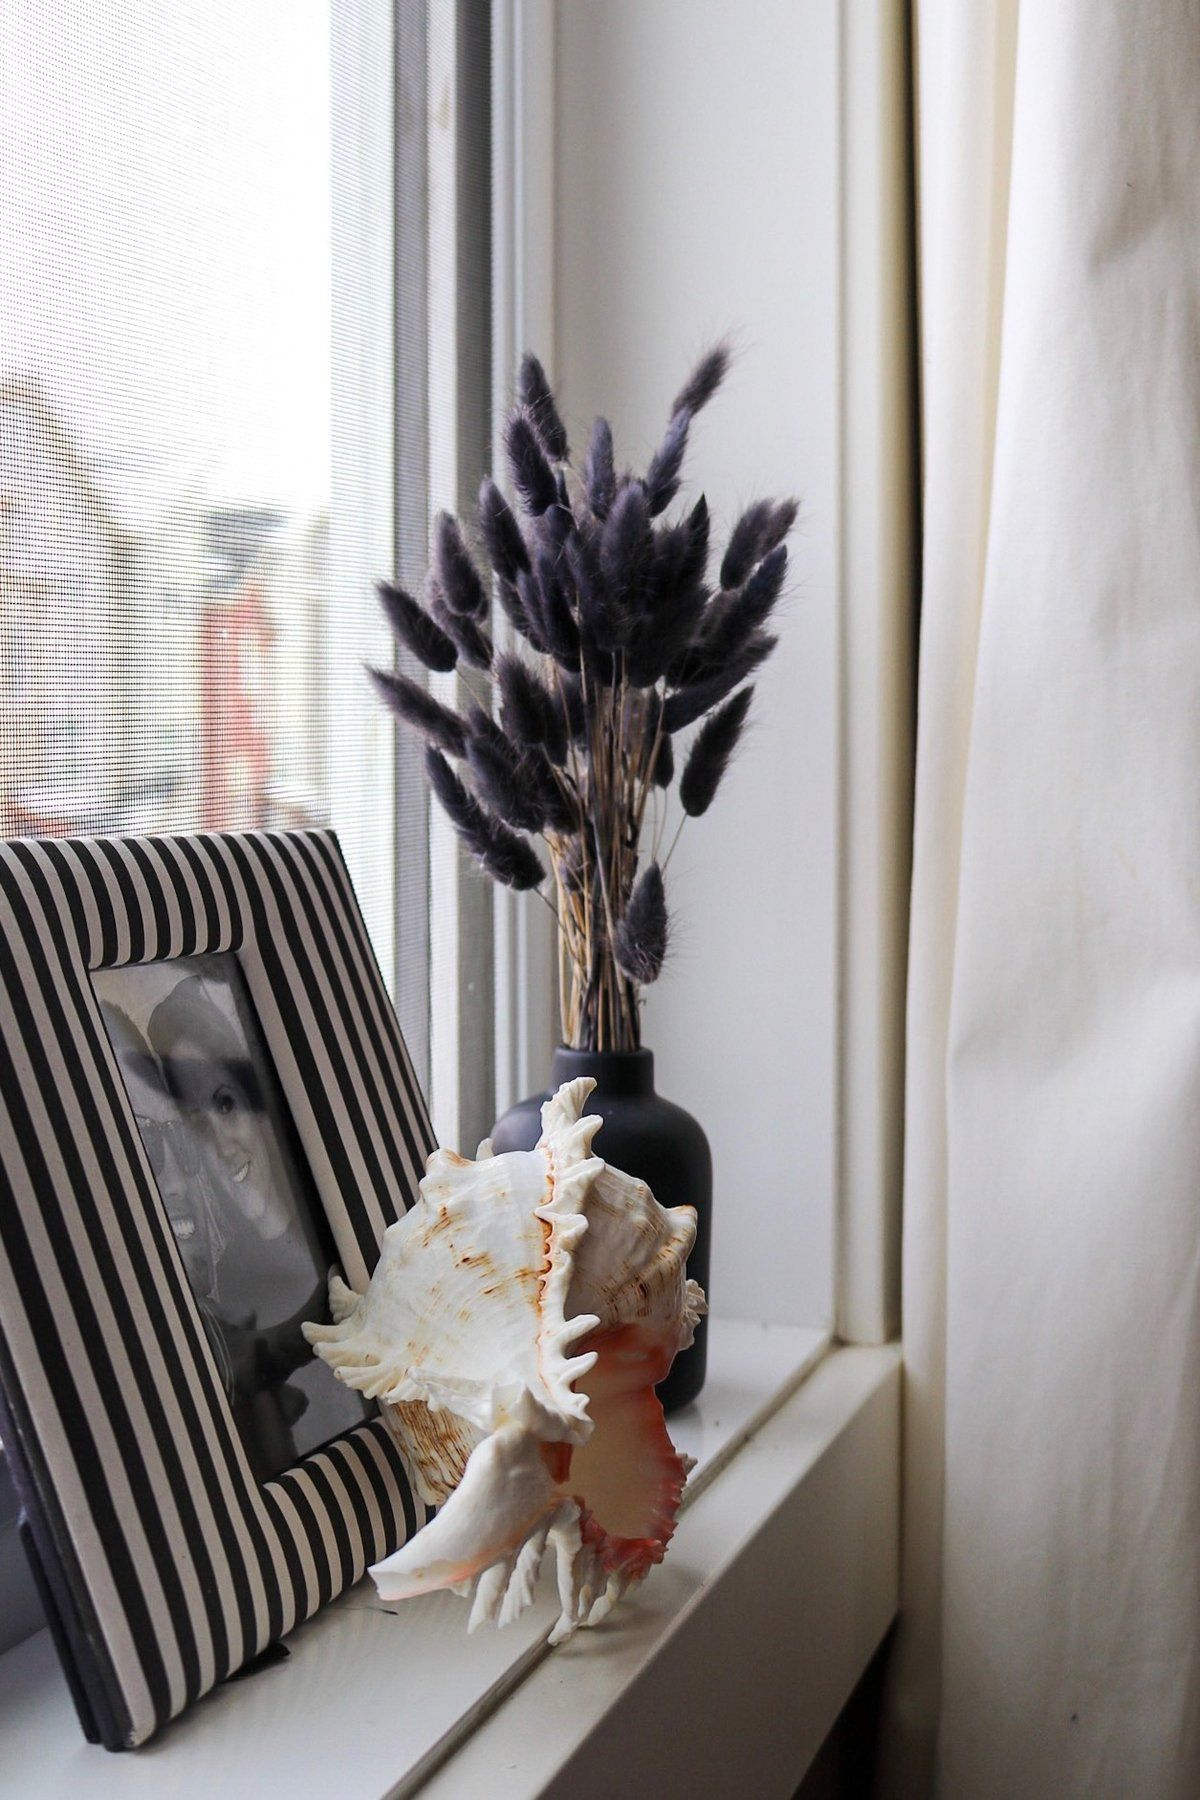 BUNNY TAILS Charcoal Black | Pampas grass, Bunny tail, Dried floral